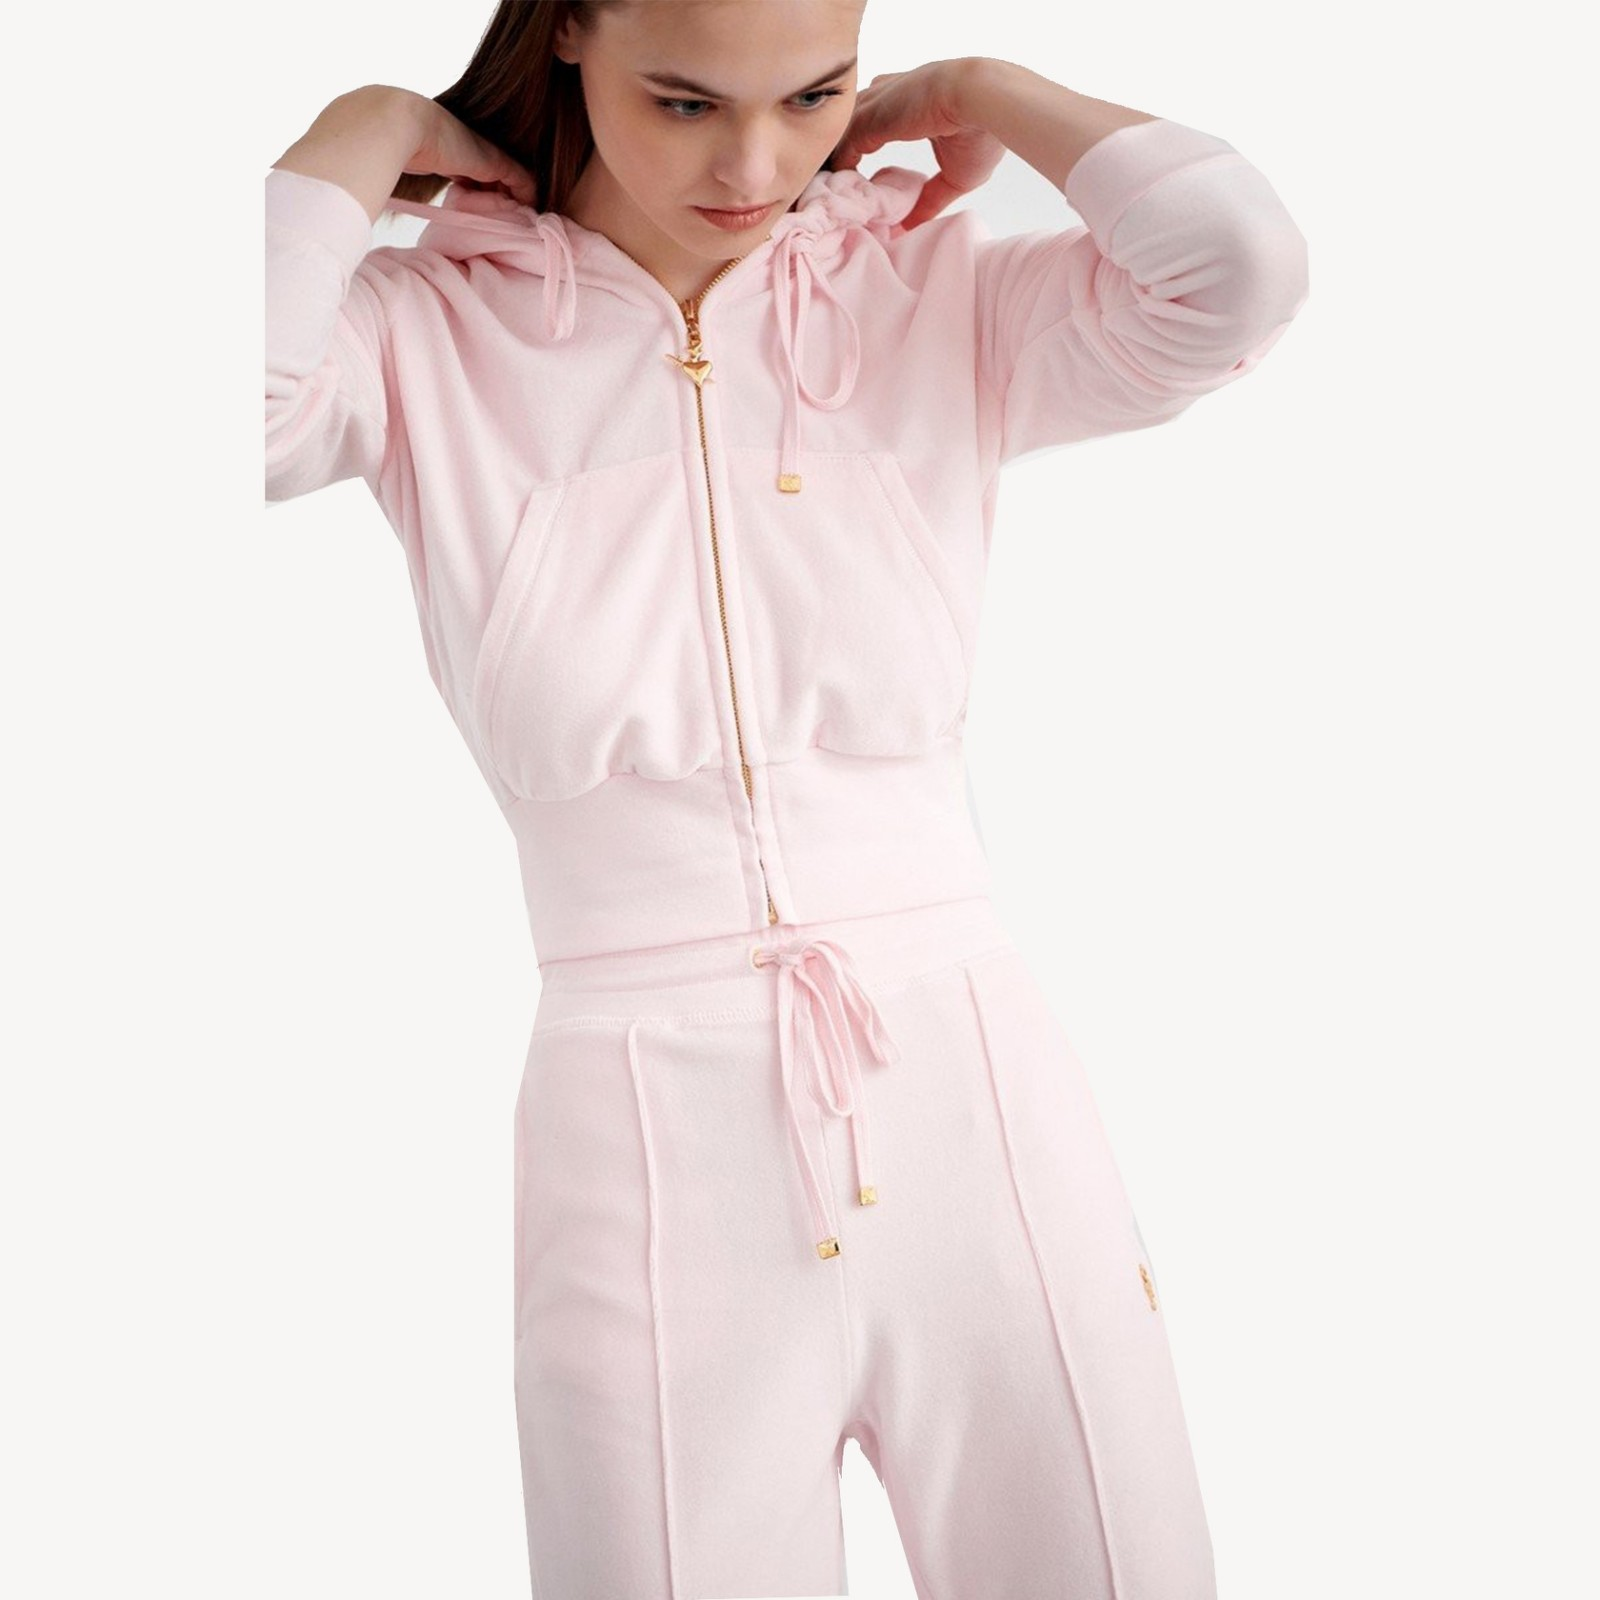 Velour zip and velour trousers baby pink Sugarfree collection familycloset